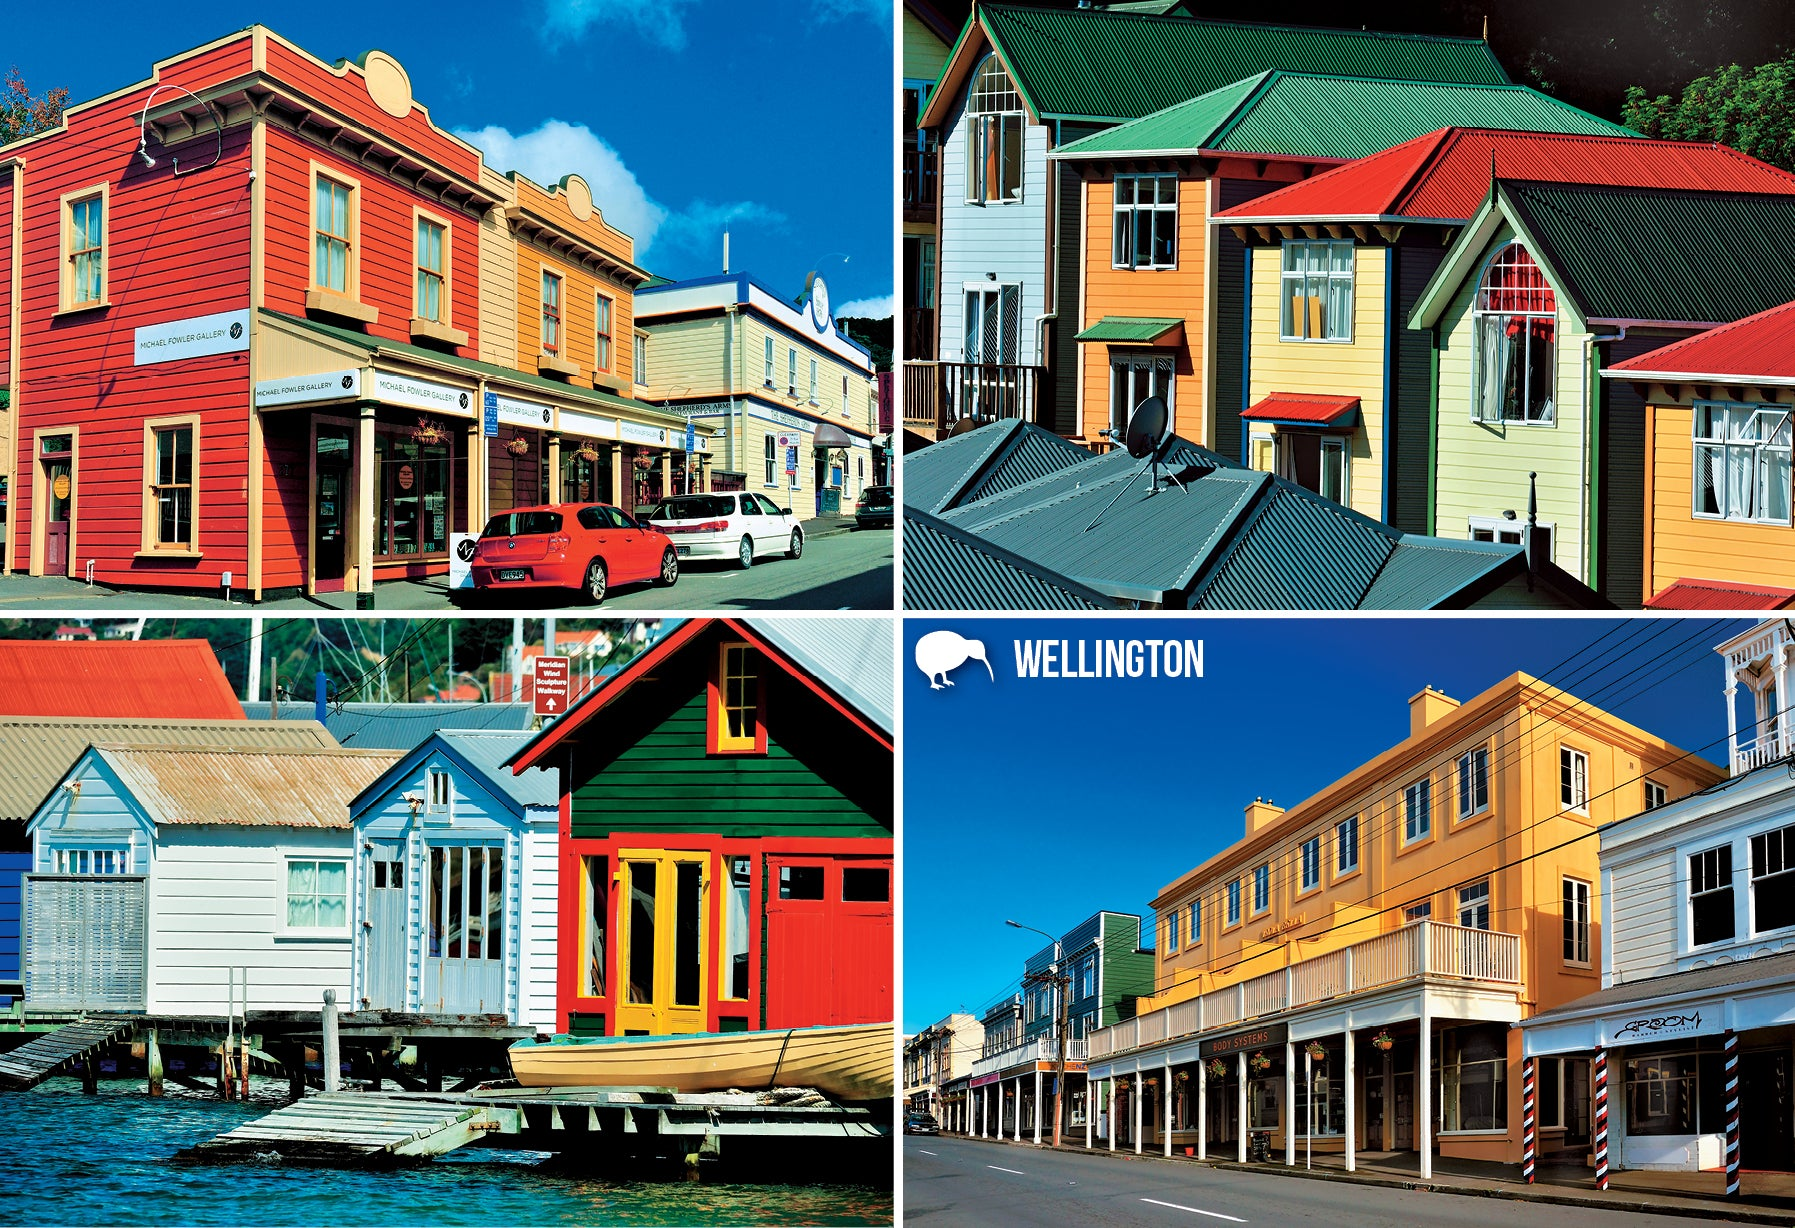 SWG1018 - Wellington Buildings of Character - Small Postcard - Postcards NZ Ltd